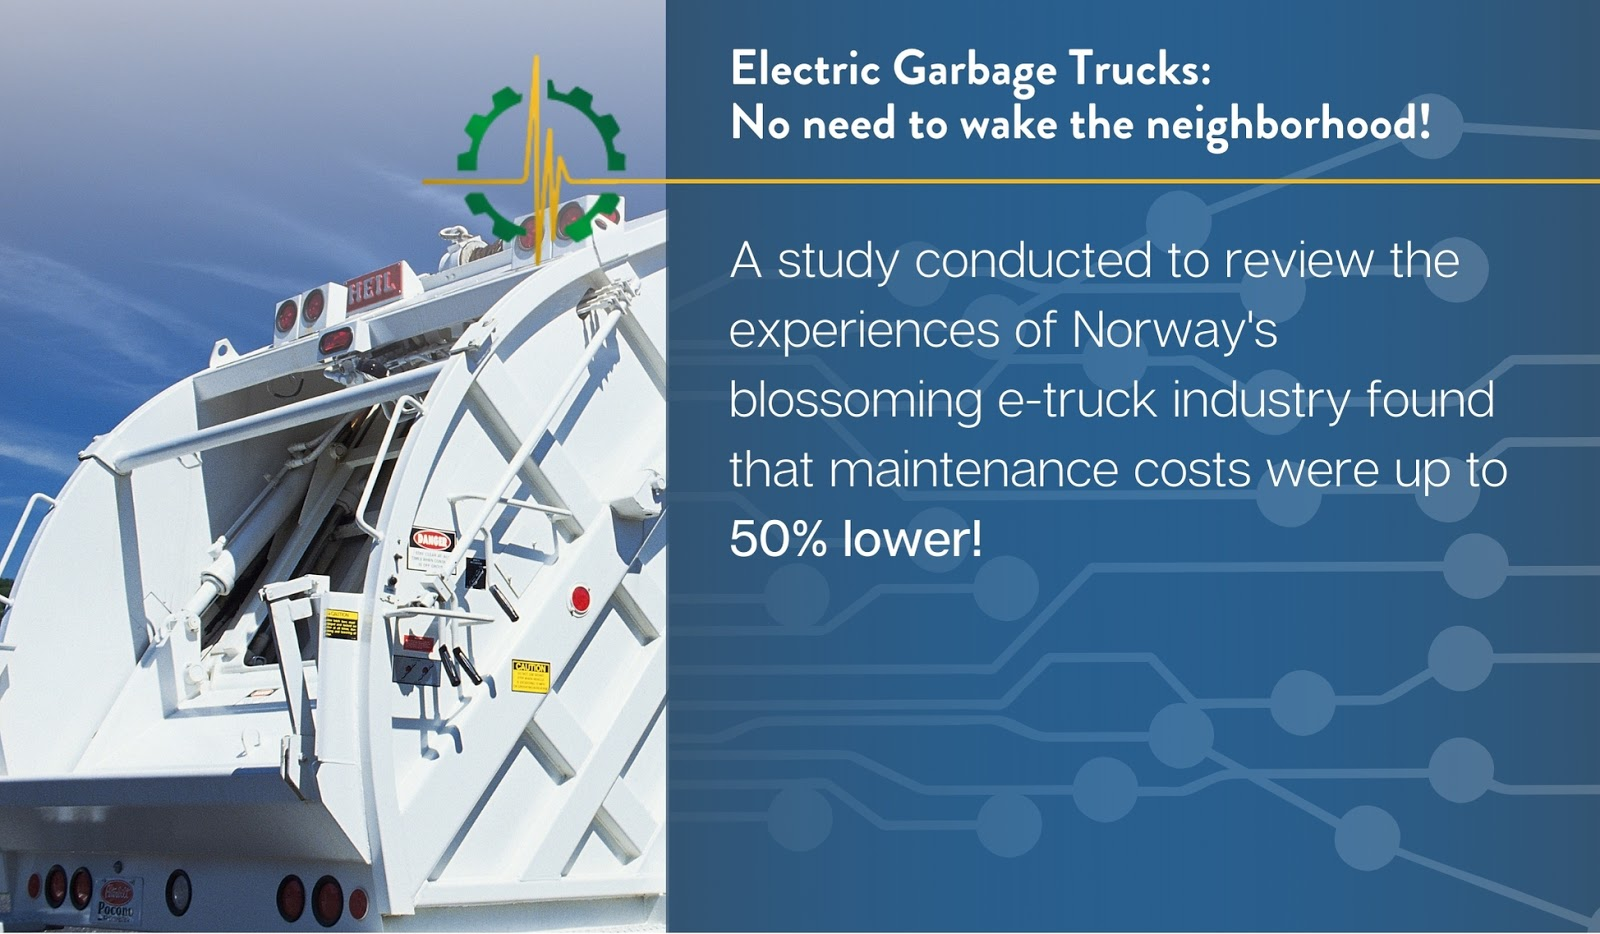 A study conducted to review the experiences of Norway's blossoming e-truck industry found that maintenance costs were up to 50% lower